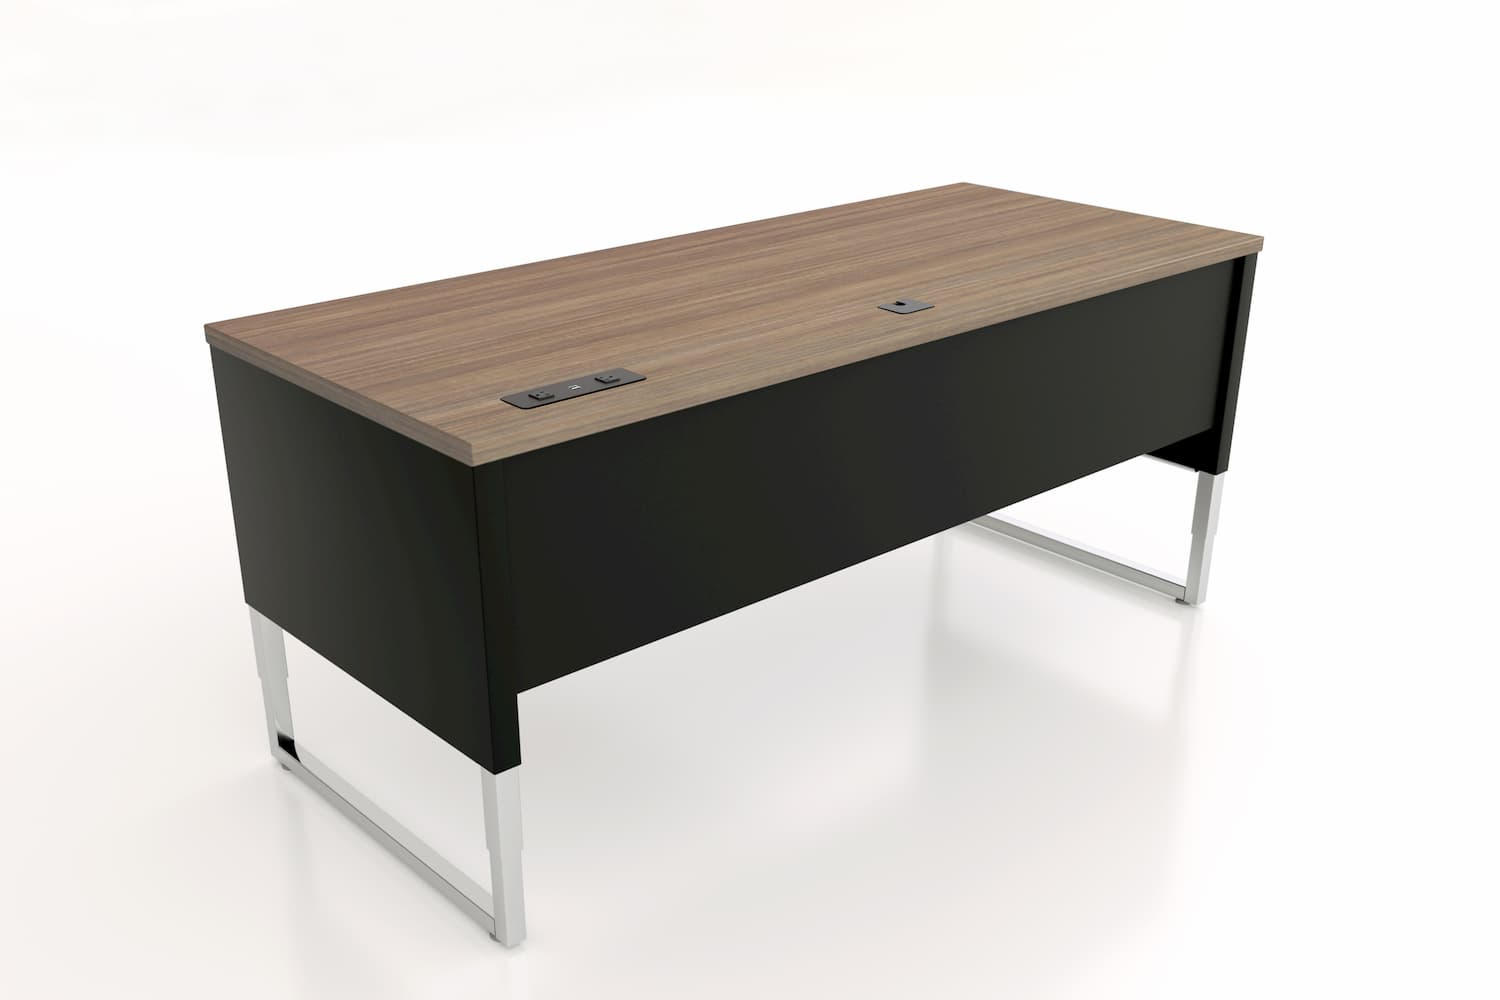 Advent-Desk-ADV-7230-BK-Custom-Top-3-Back